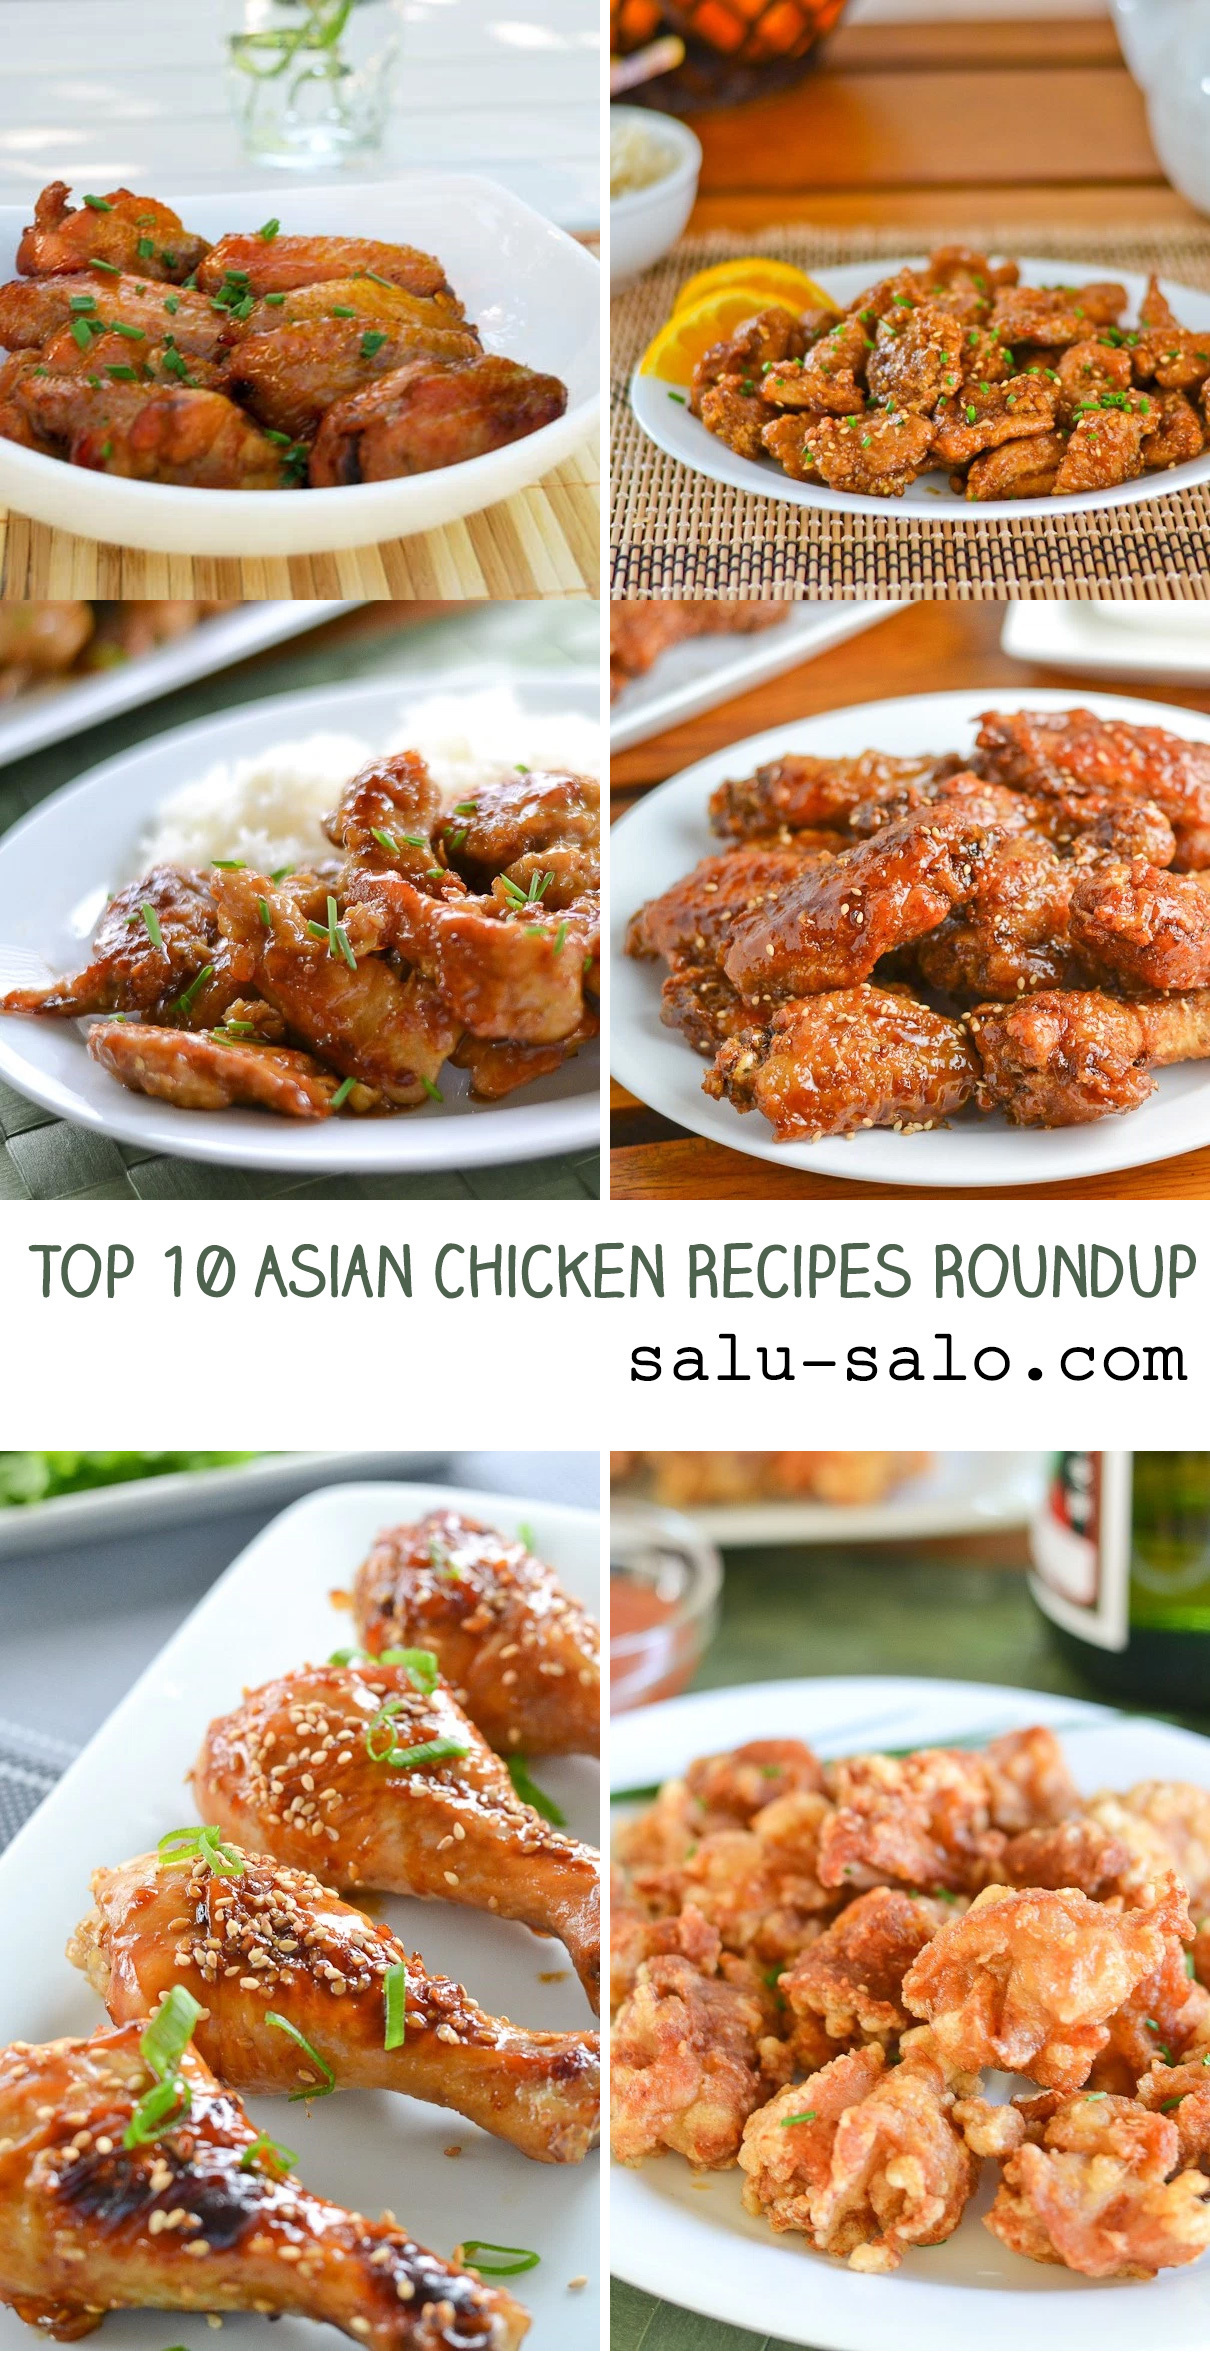 Asian Chicken Recipes Roundup – Top 10